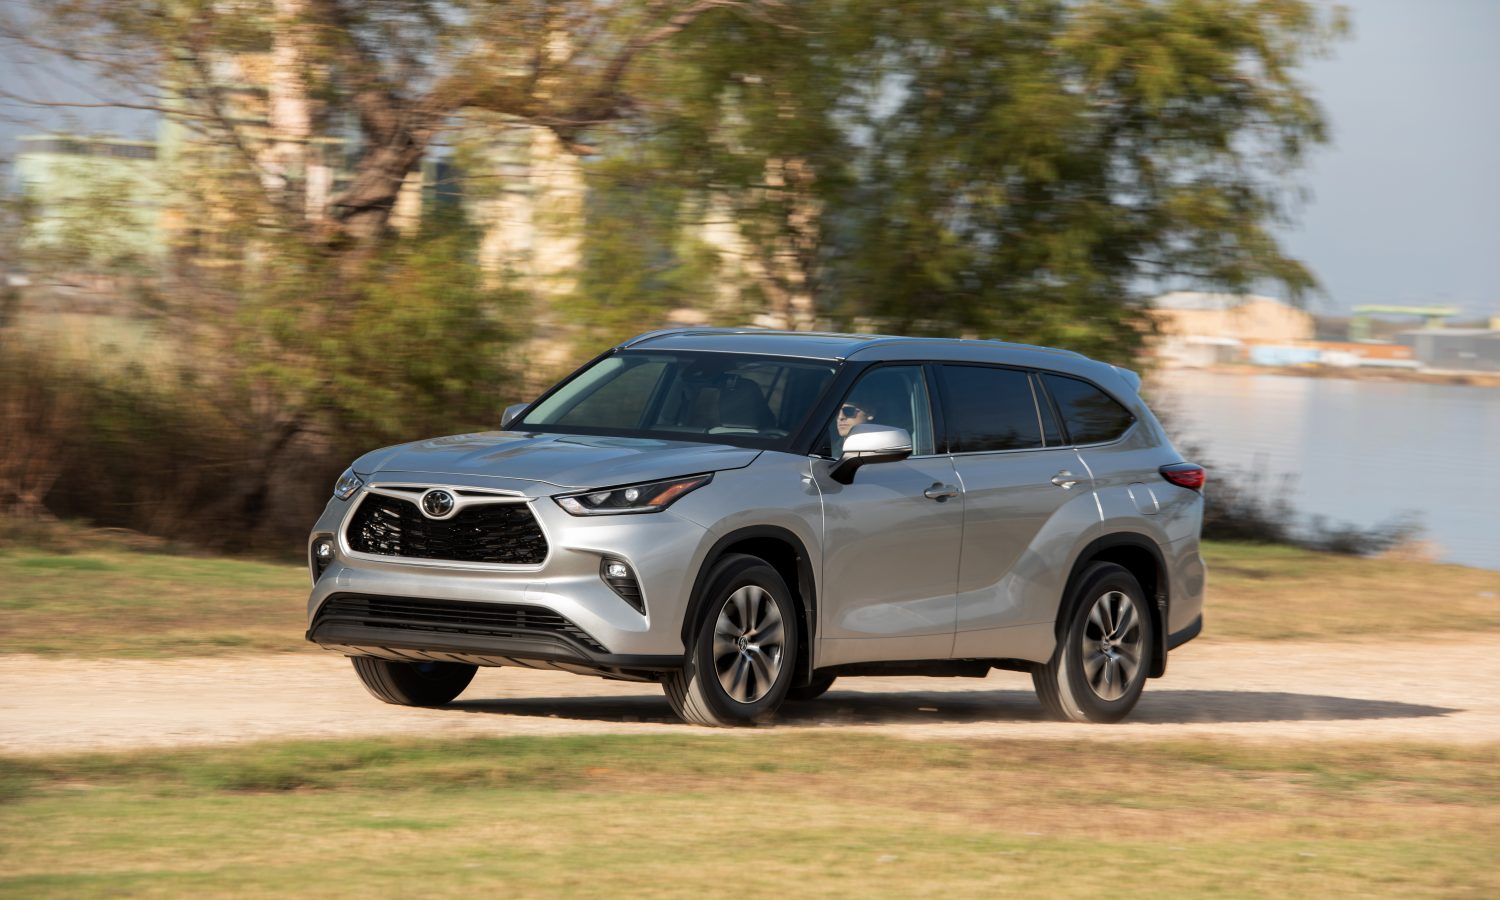 A 2021 Toyota Highlander cruising the in style.